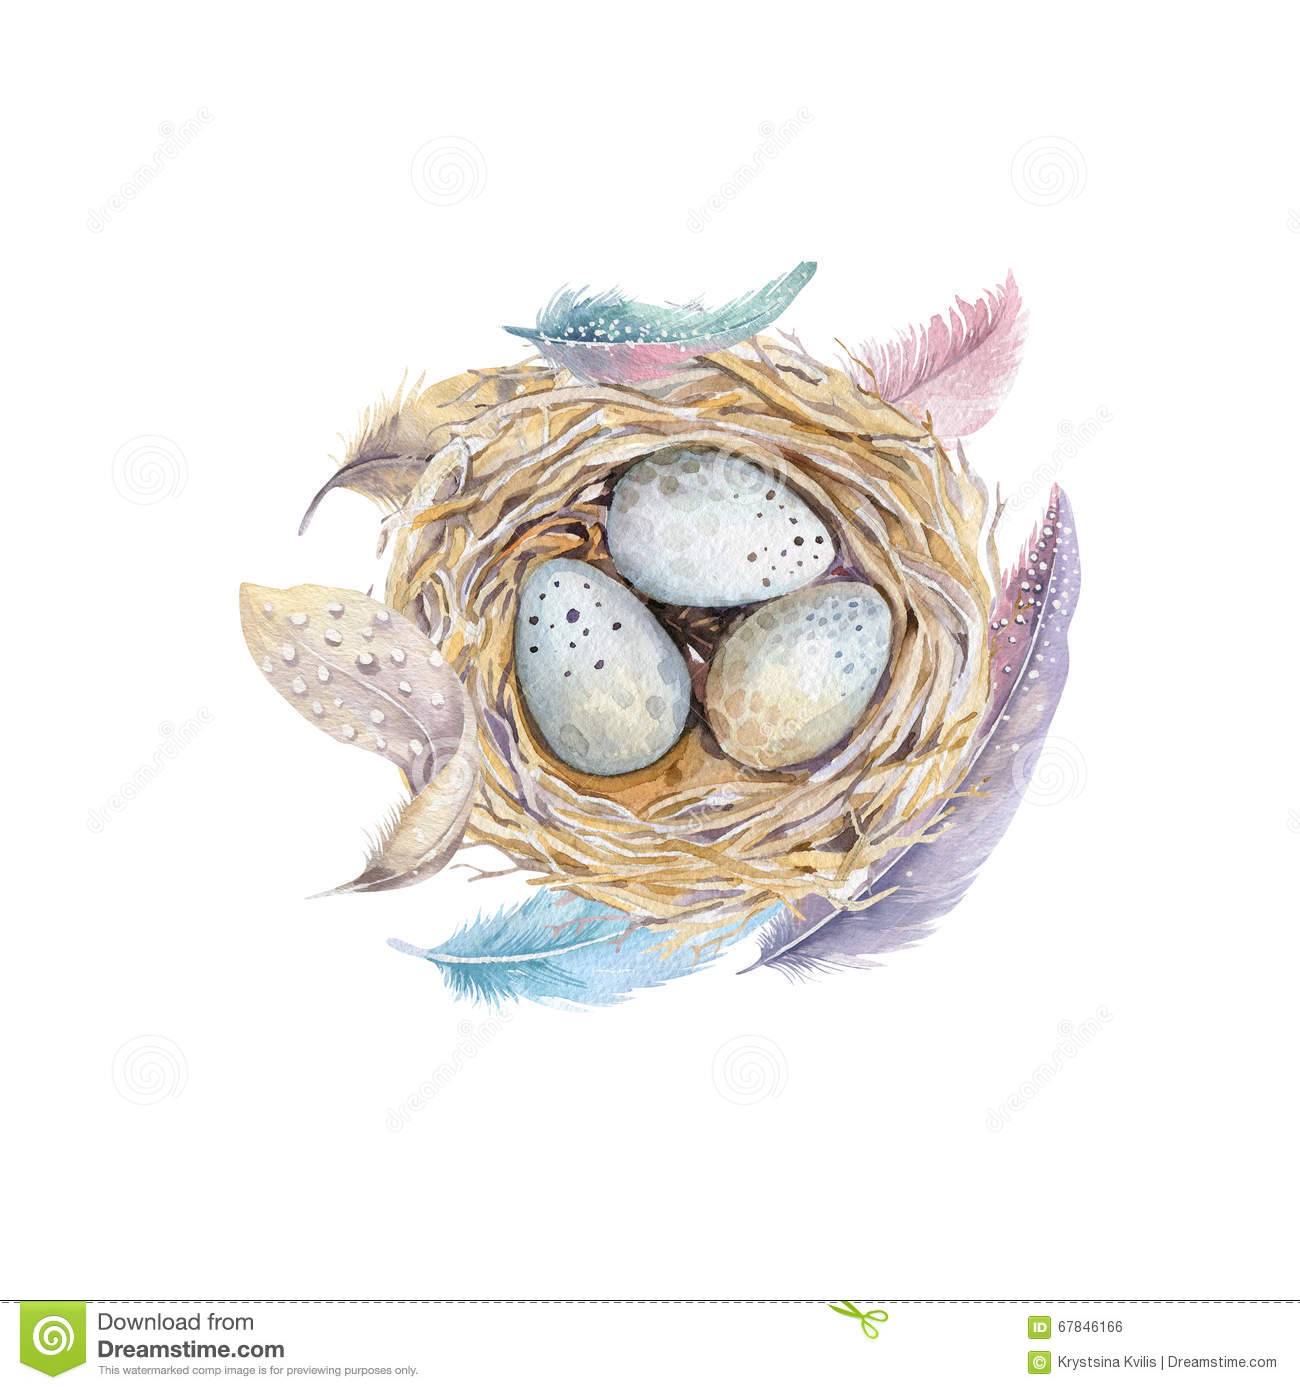 how to draw a nest with eggs